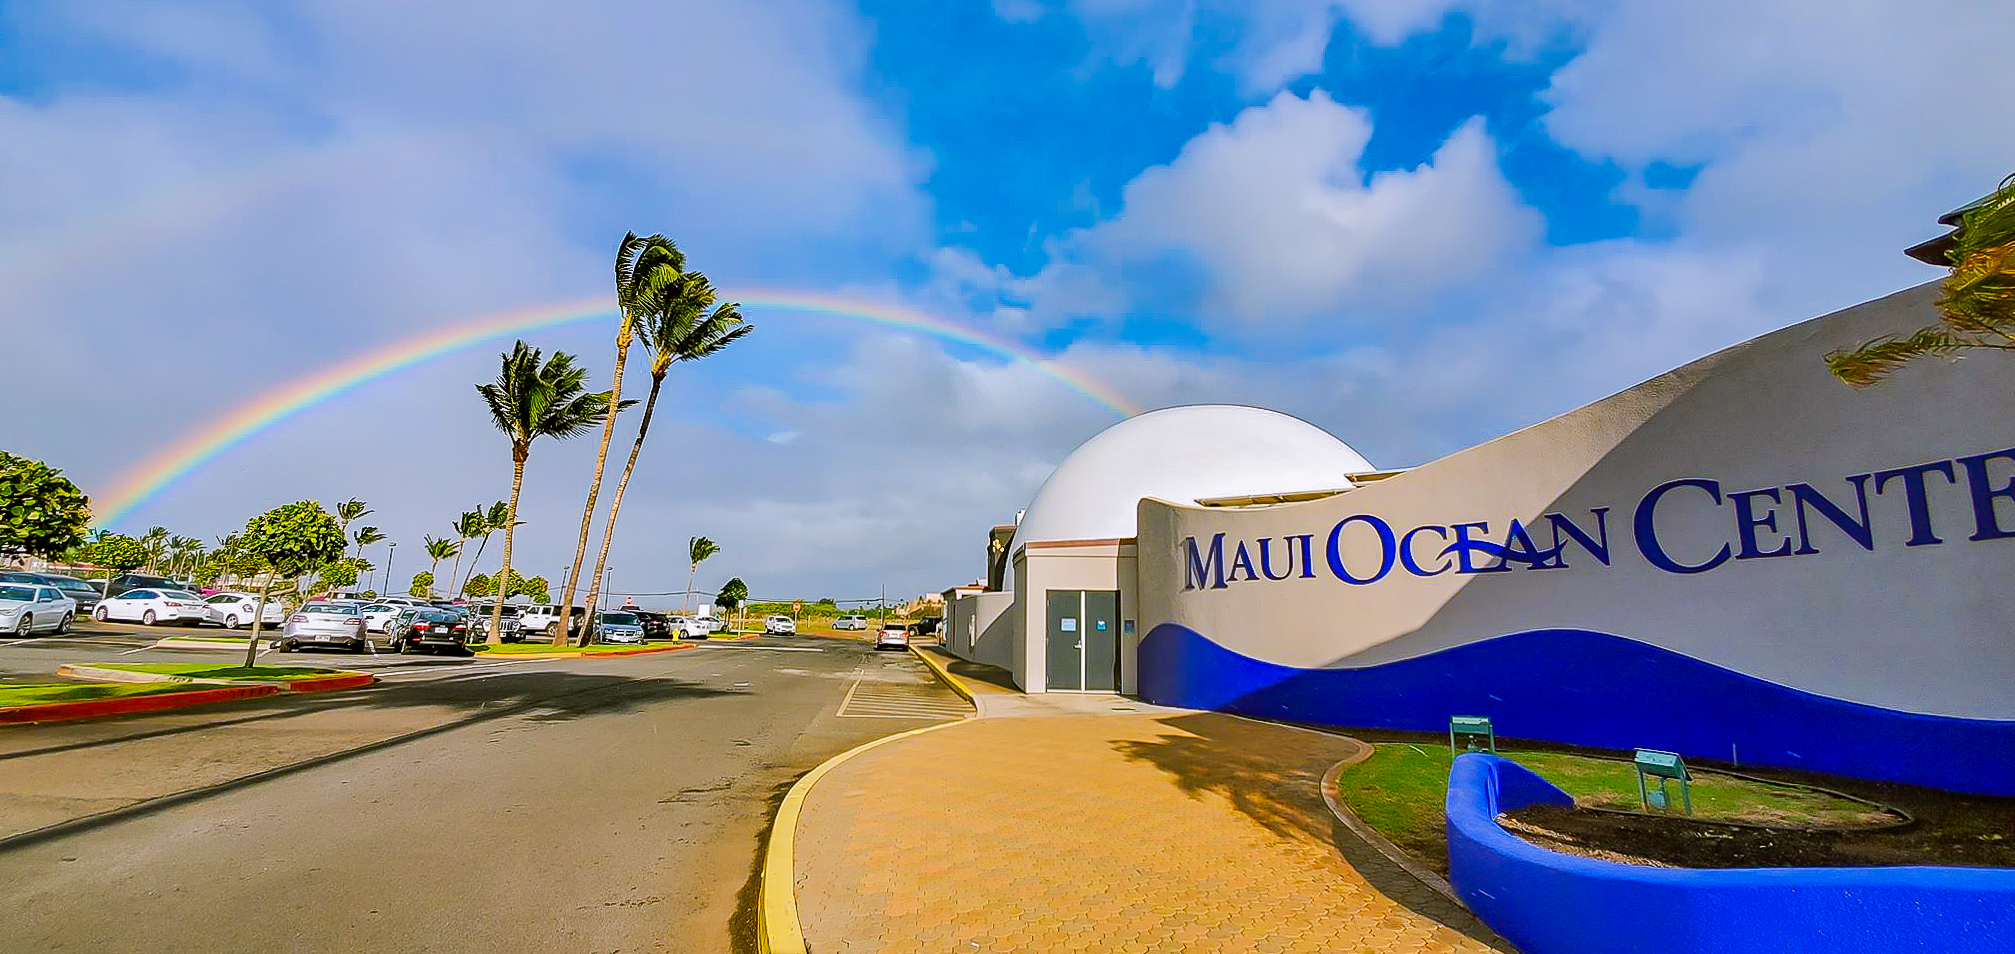 Maui Ocean Center to Provide Beach Cleanup Materials Starting June 8